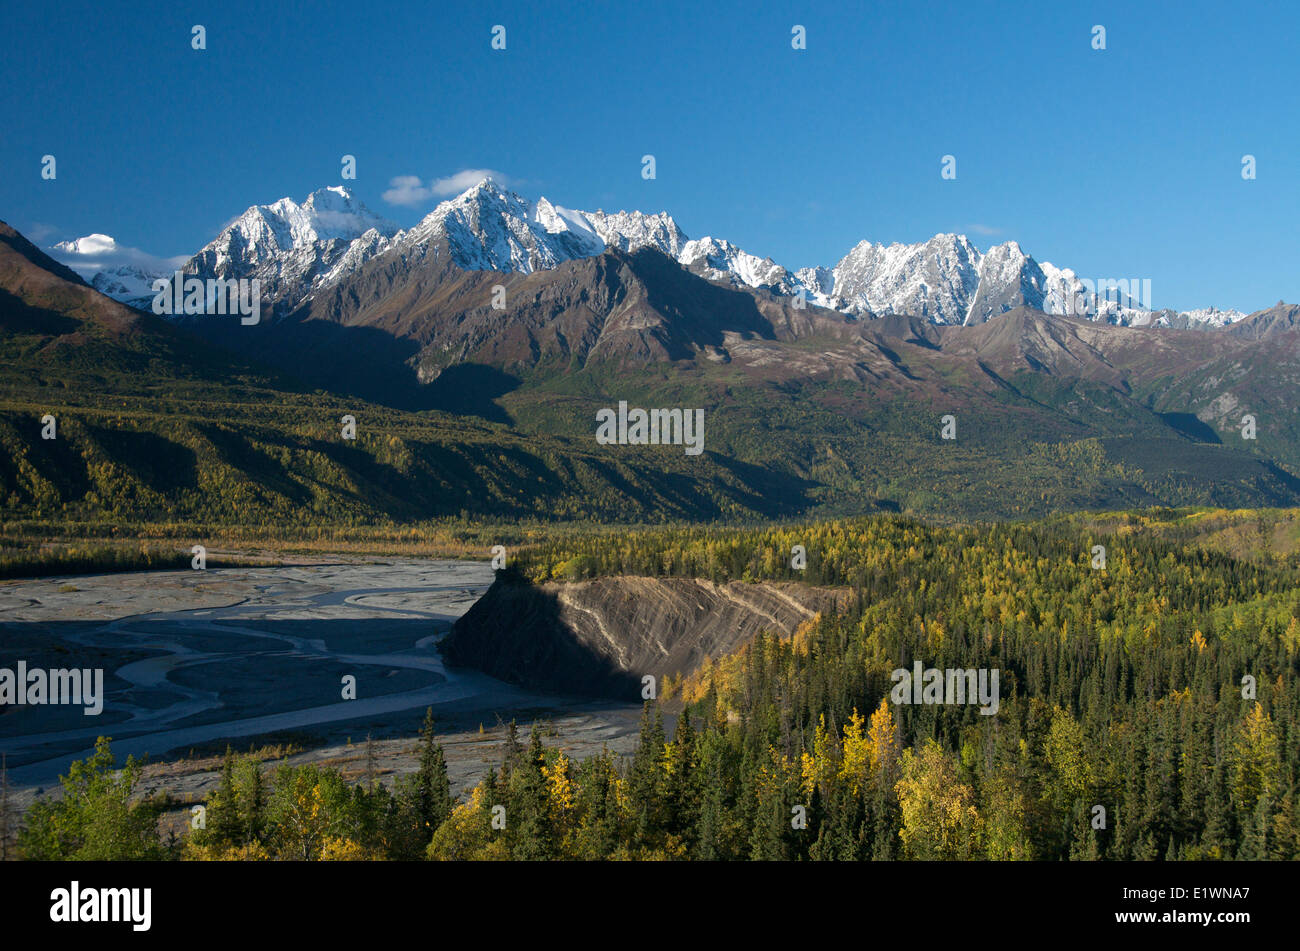 Scene of first snows on Chugach Mountains and Matanuska River along Glenn Highway, Alaska, USA - Stock Image